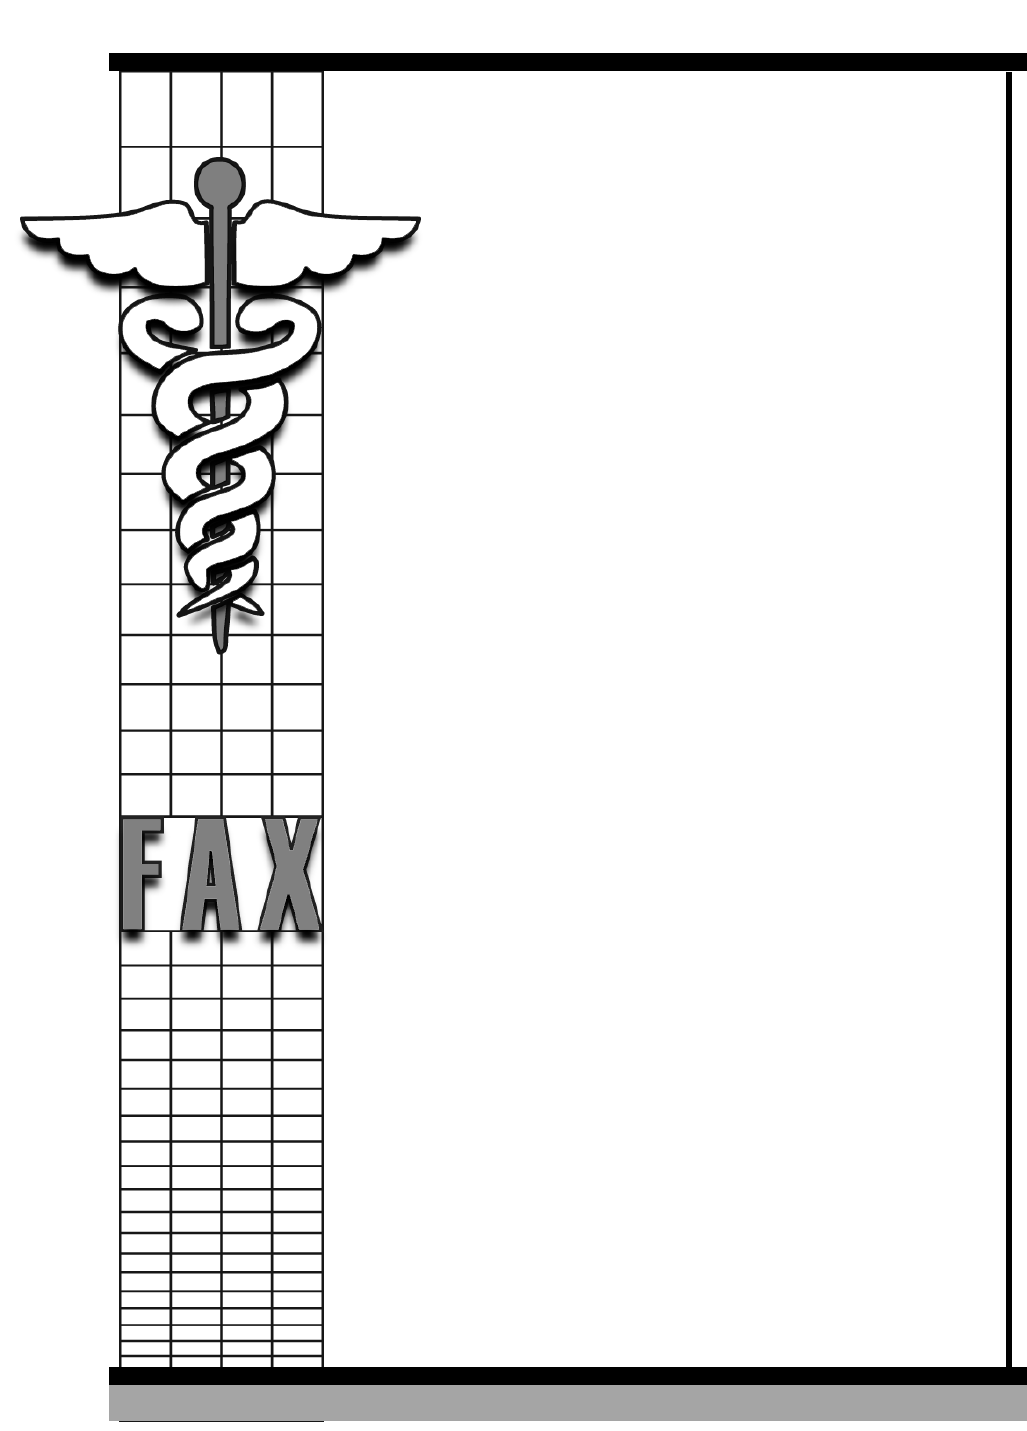 fax sheet the medical fax cover sheet can help you make a – Resume Fax Cover Sheet